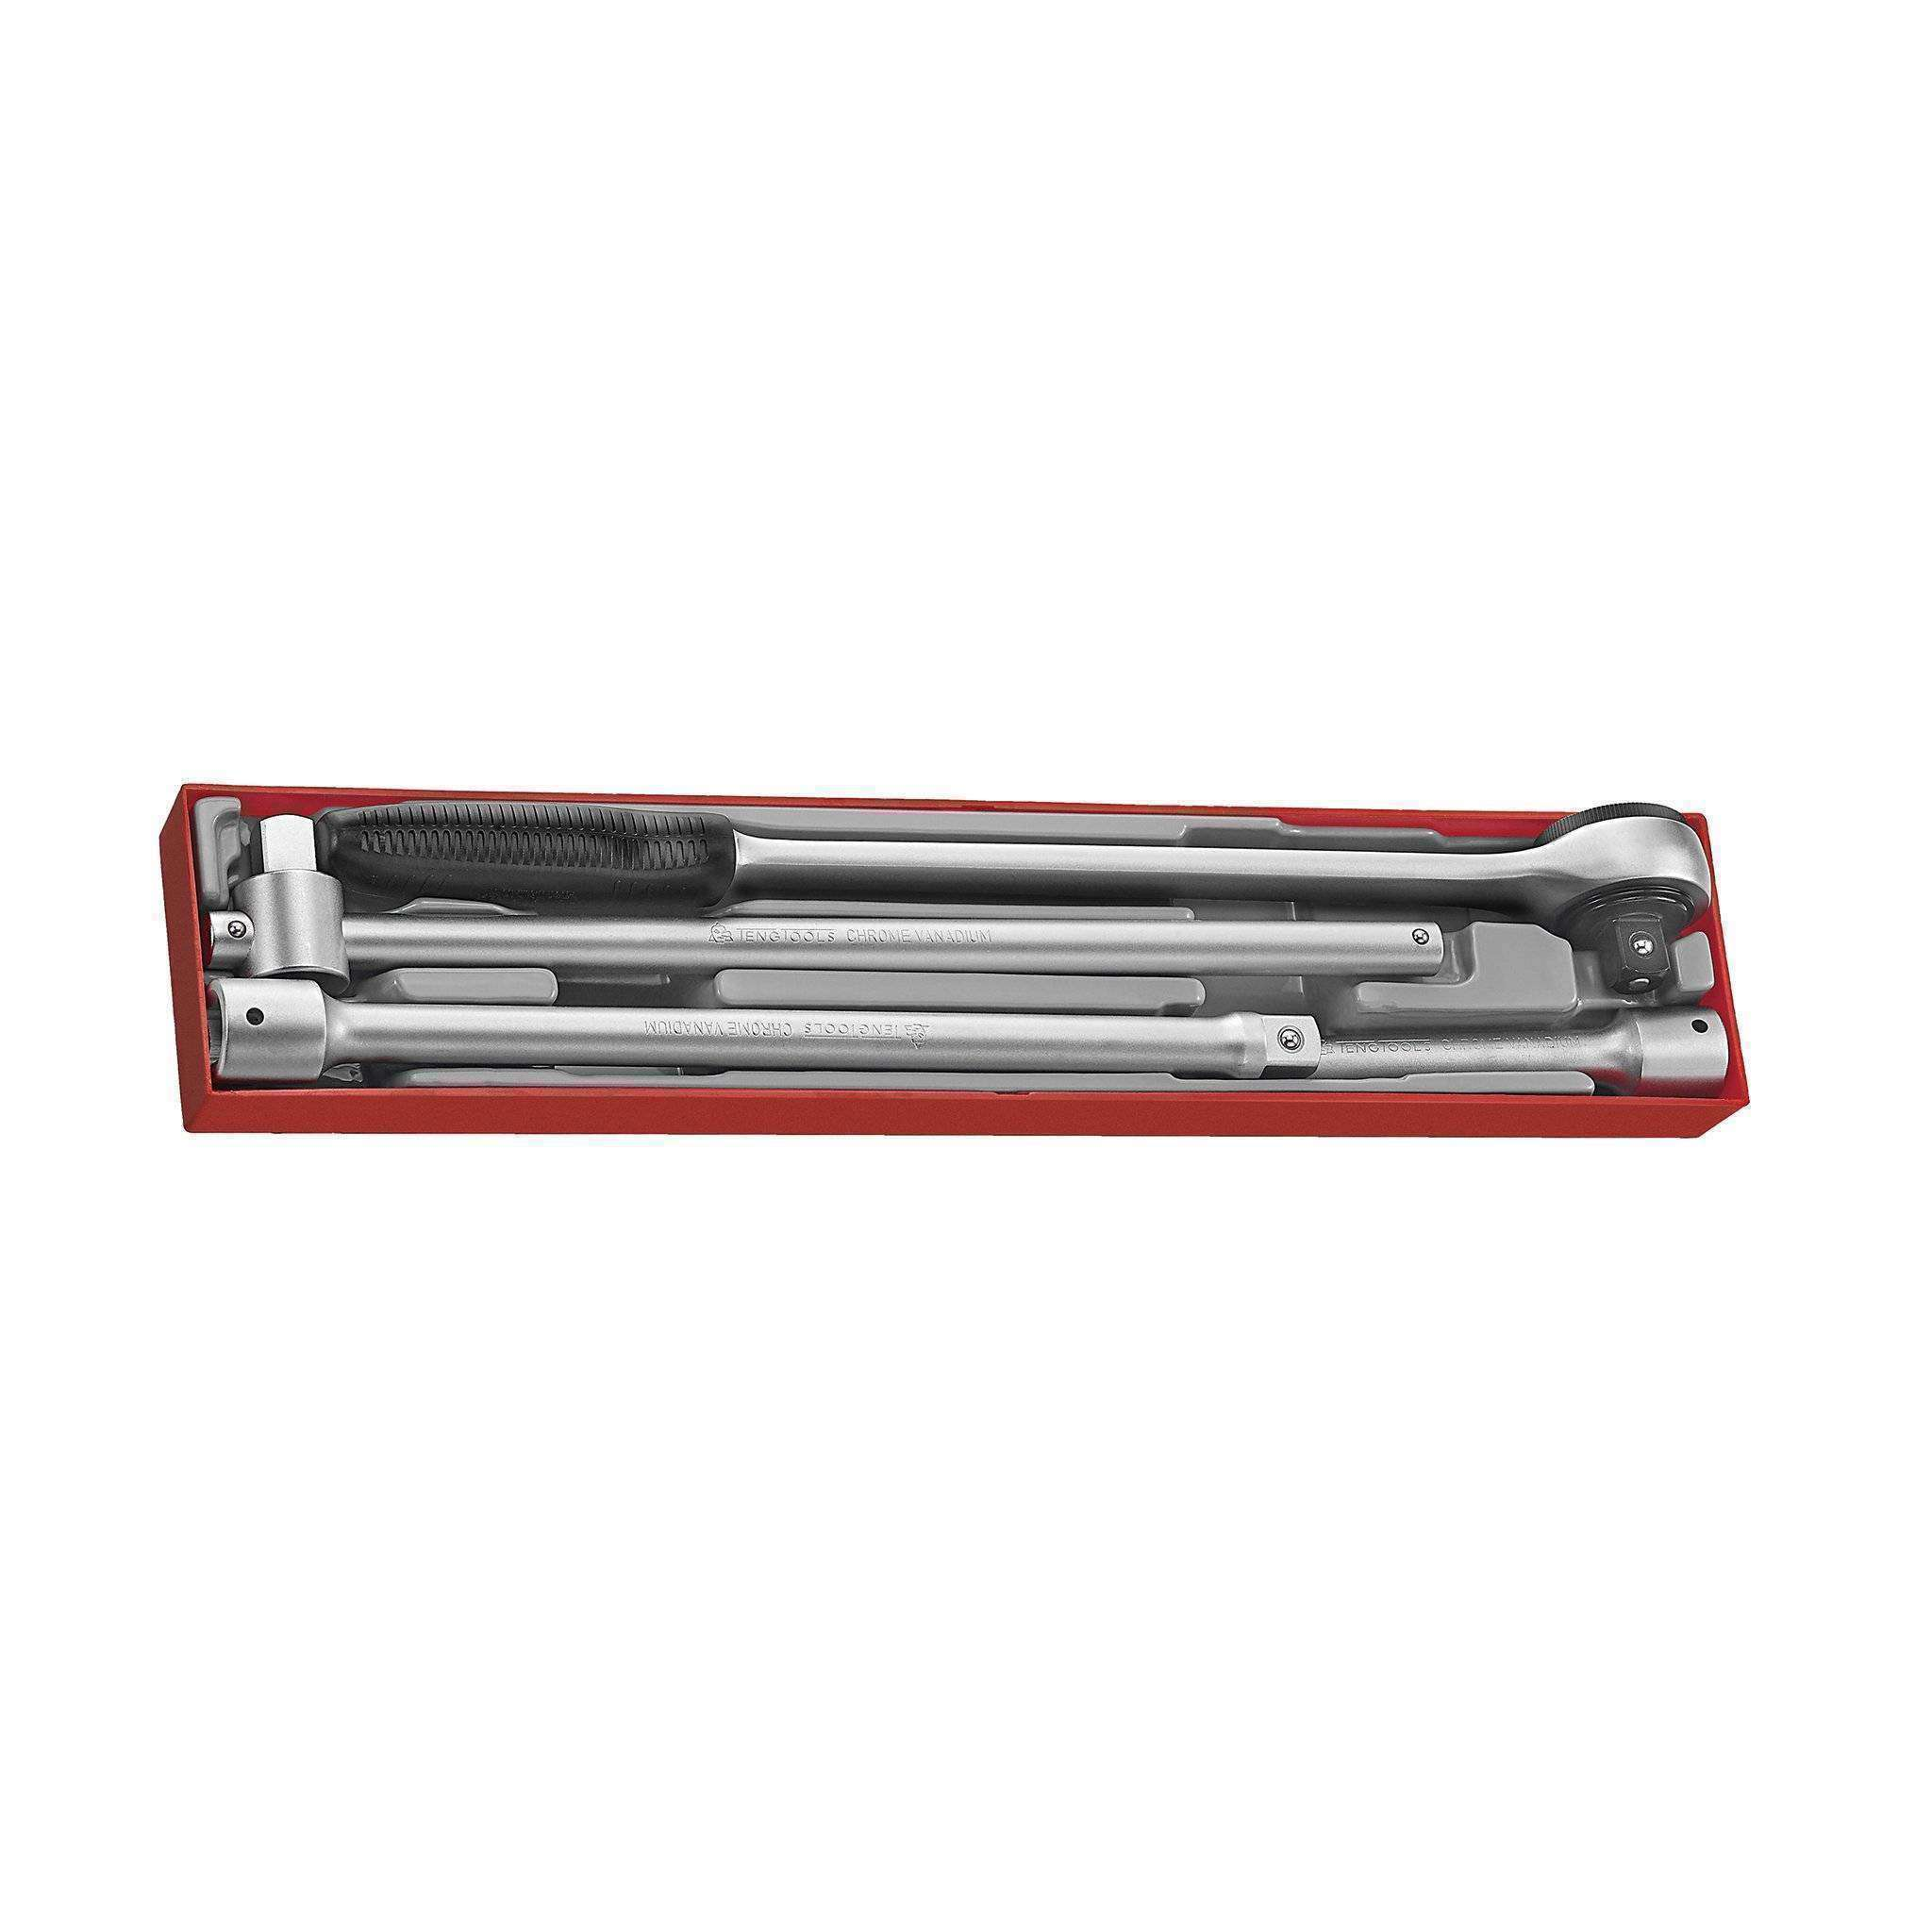 Teng Tools TTX3404 - 4 Piece 3/4 inch Drive Ratchet and Accessories Set - Teng Tools USA